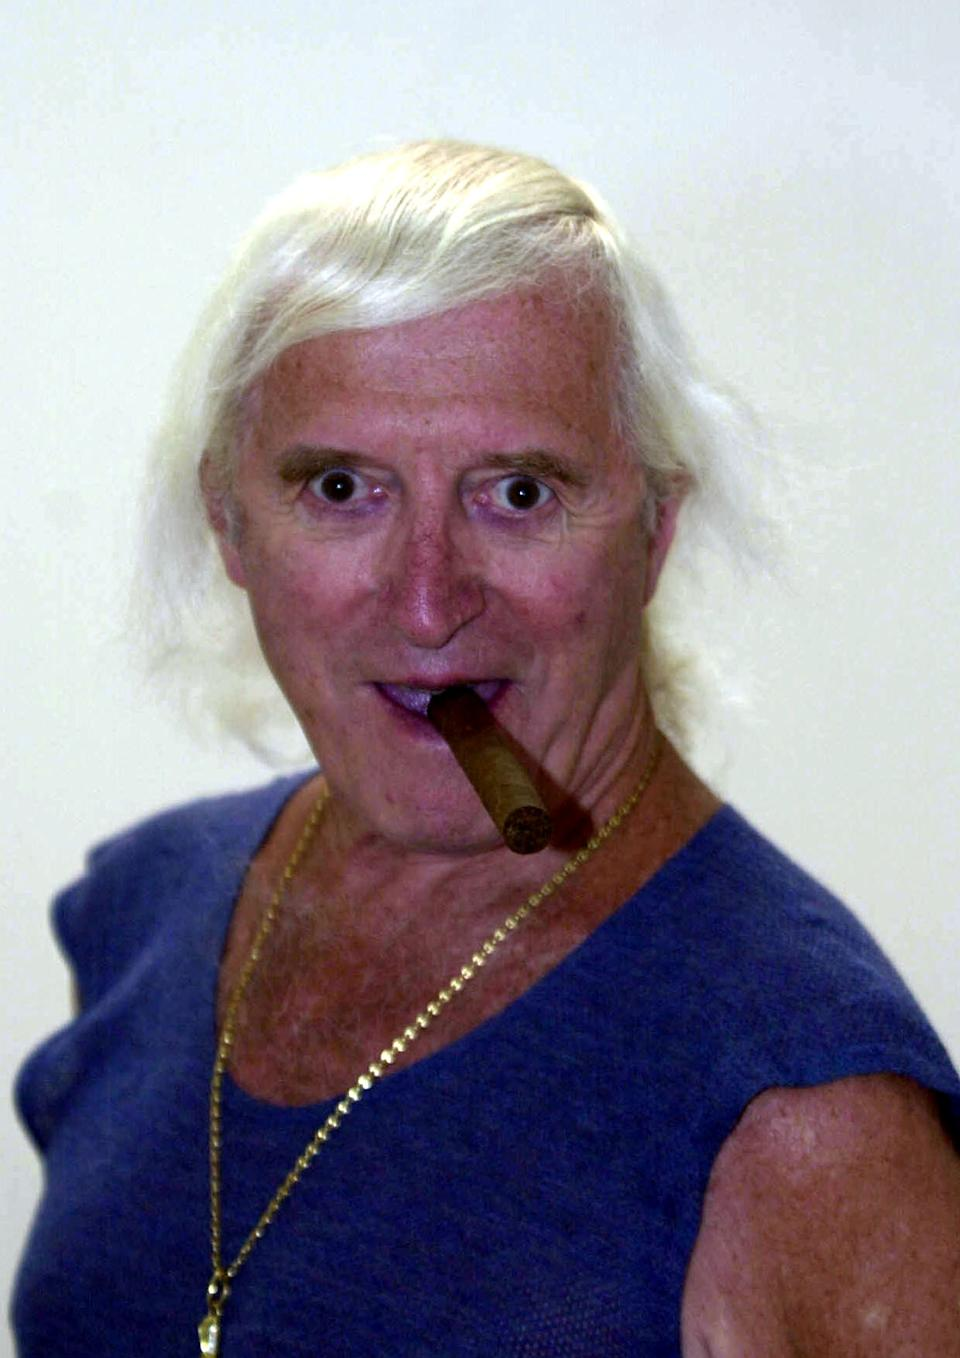 Sir Jimmy Savile launches the new exhibition Intelligence: New British Art 2000 at the Tate Britain, London.